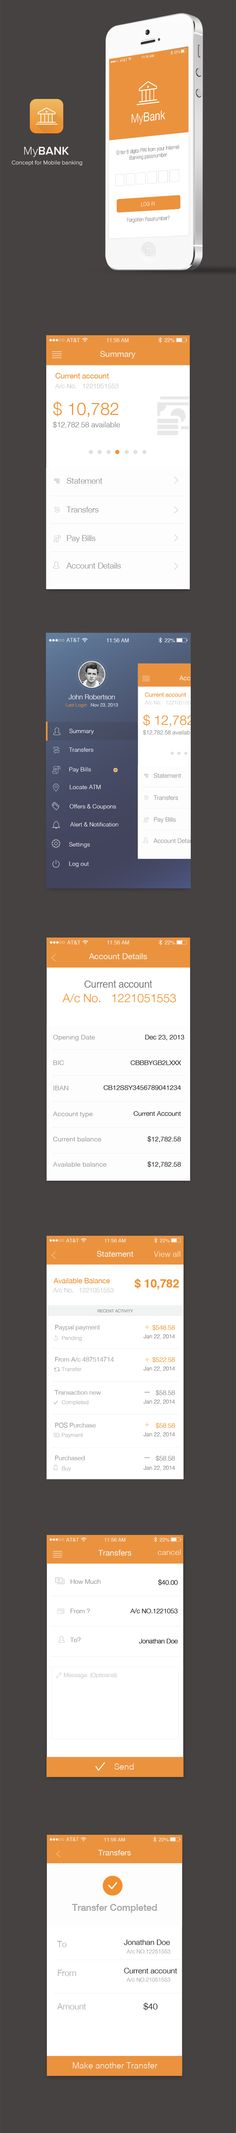 Bank App by sumit chakraborty, via Behance